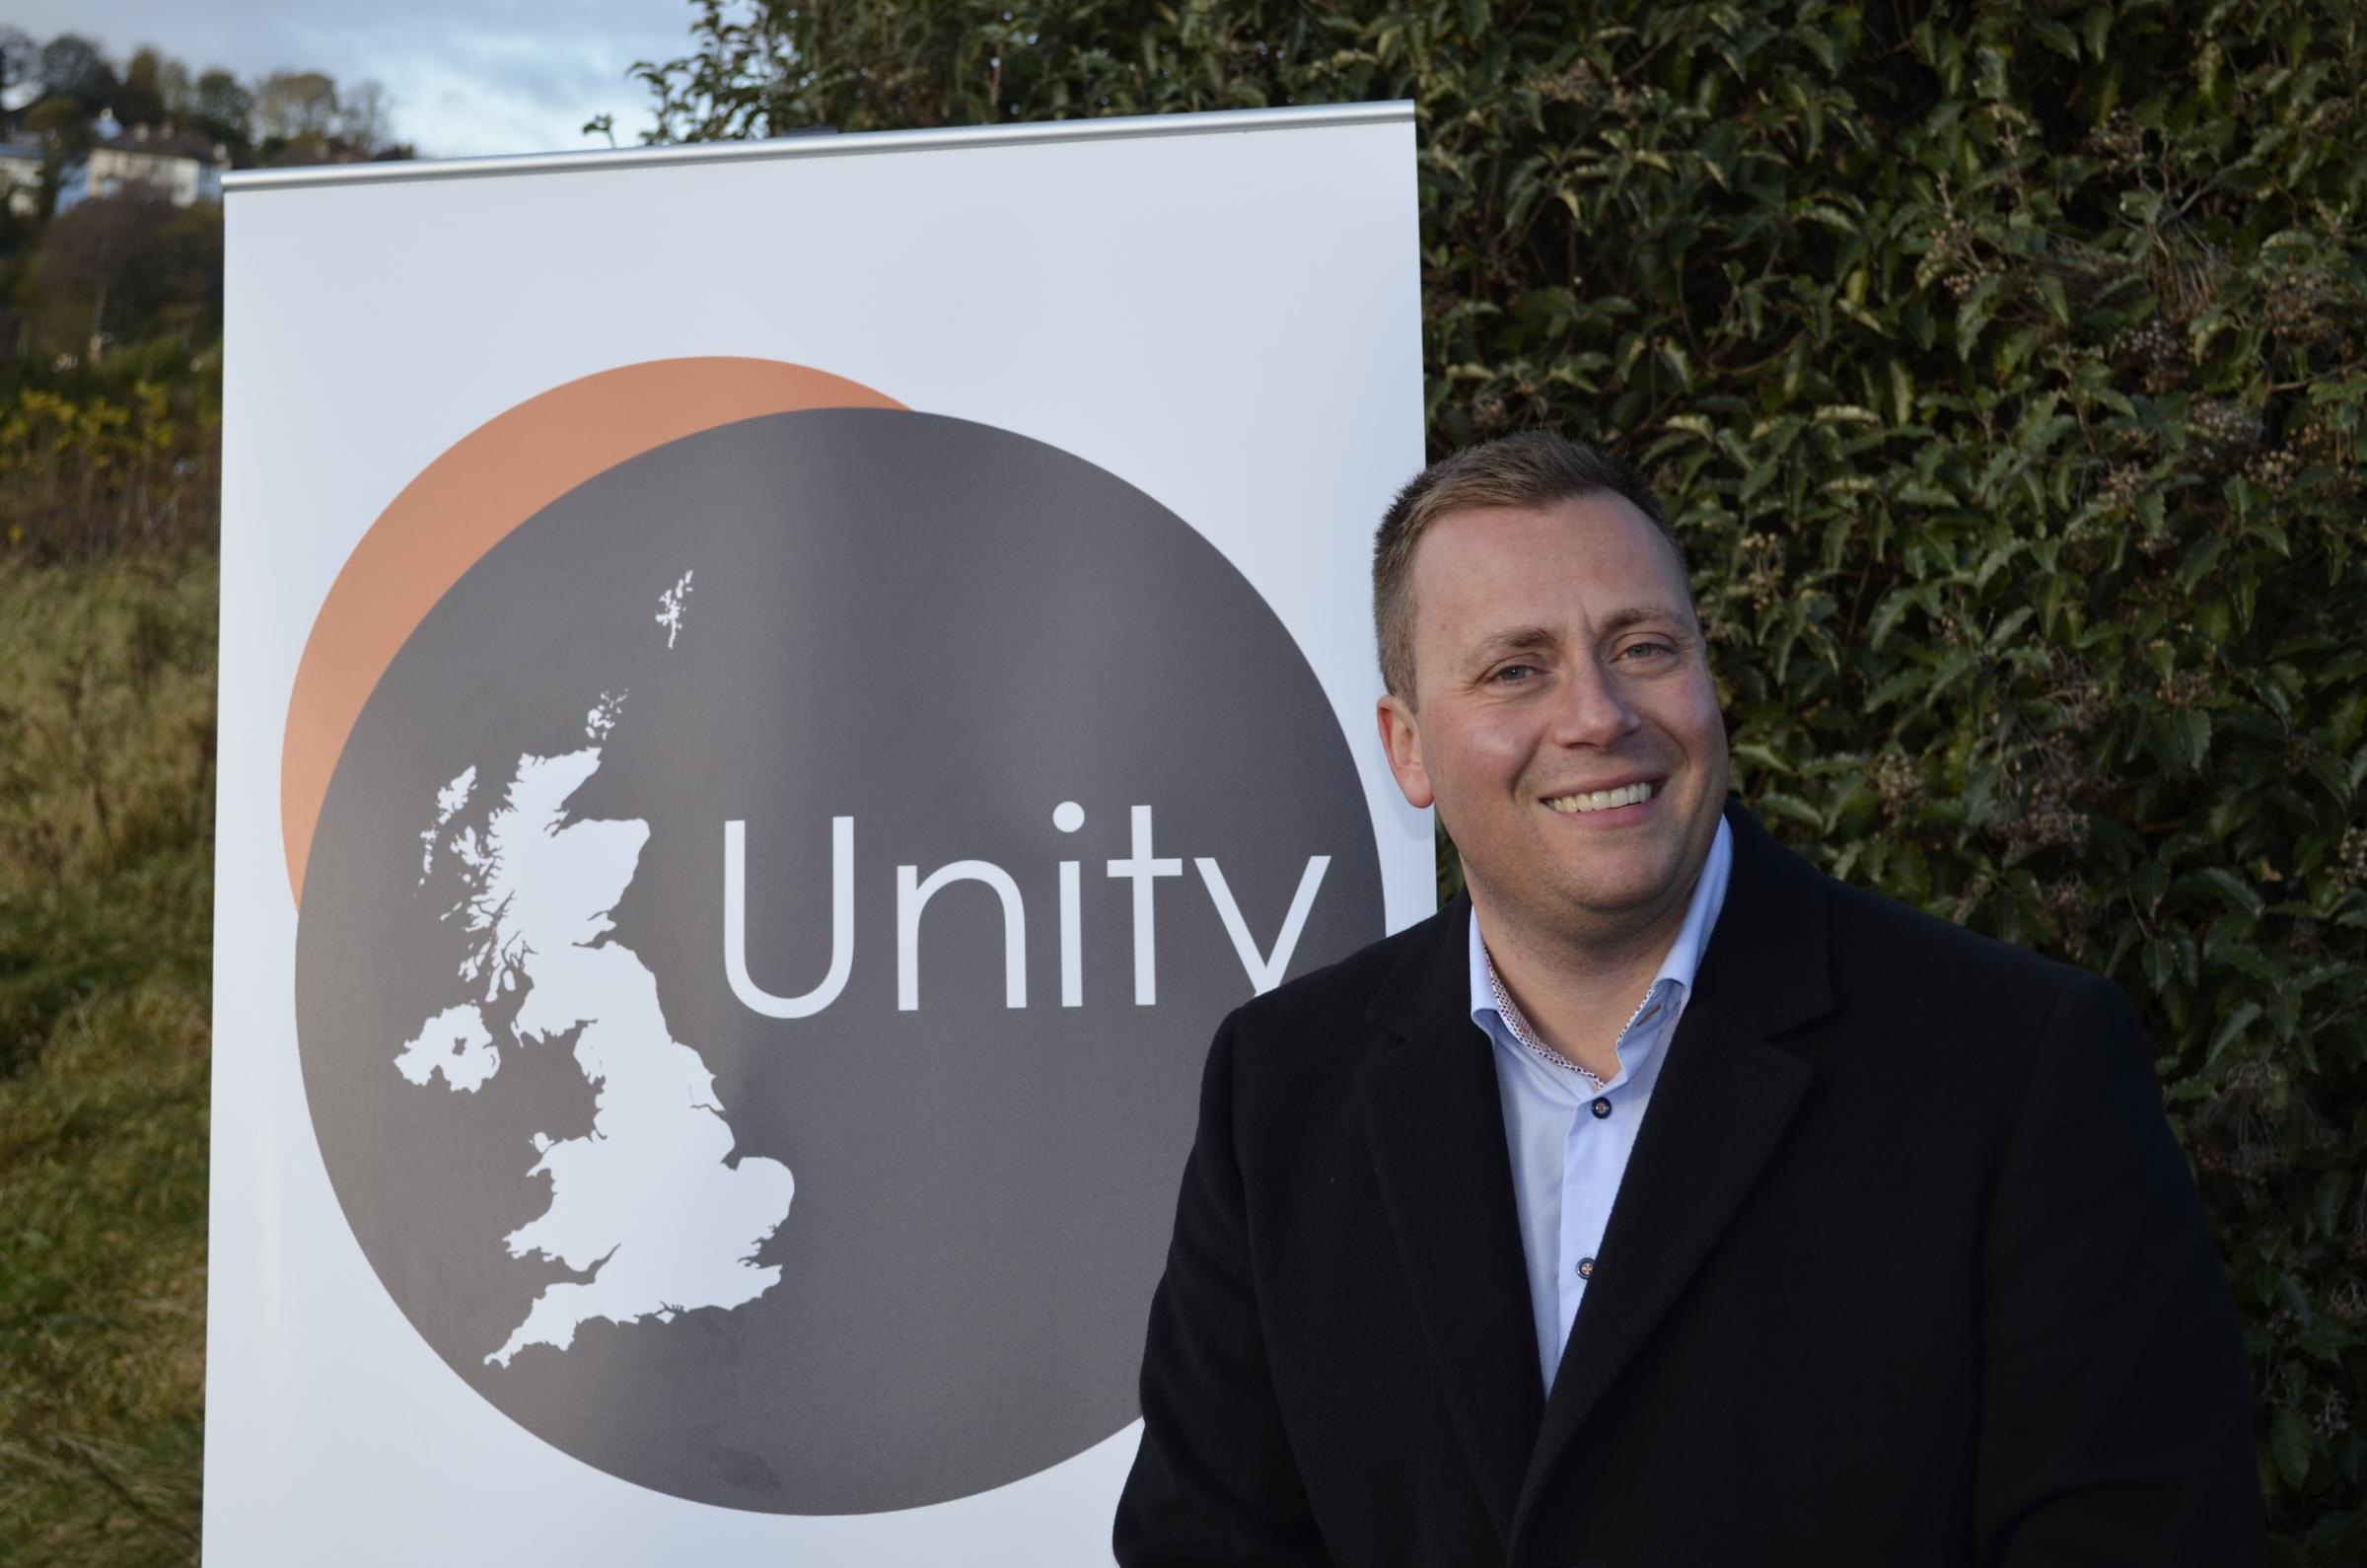 David Clews of UK Unity